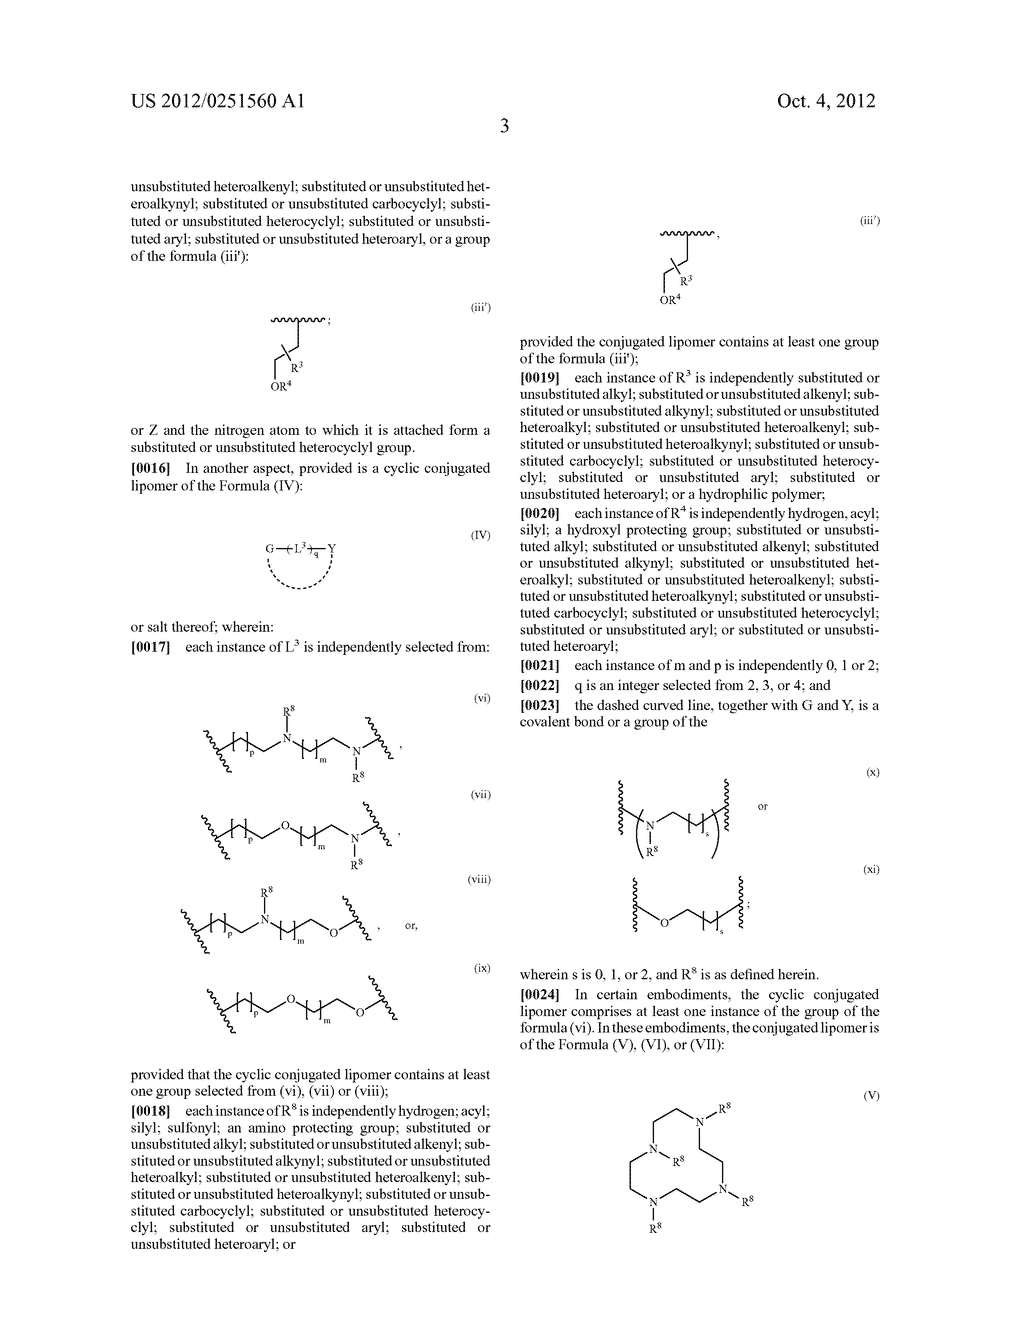 CONJUGATED LIPOMERS AND USES THEREOF - diagram, schematic, and image 39